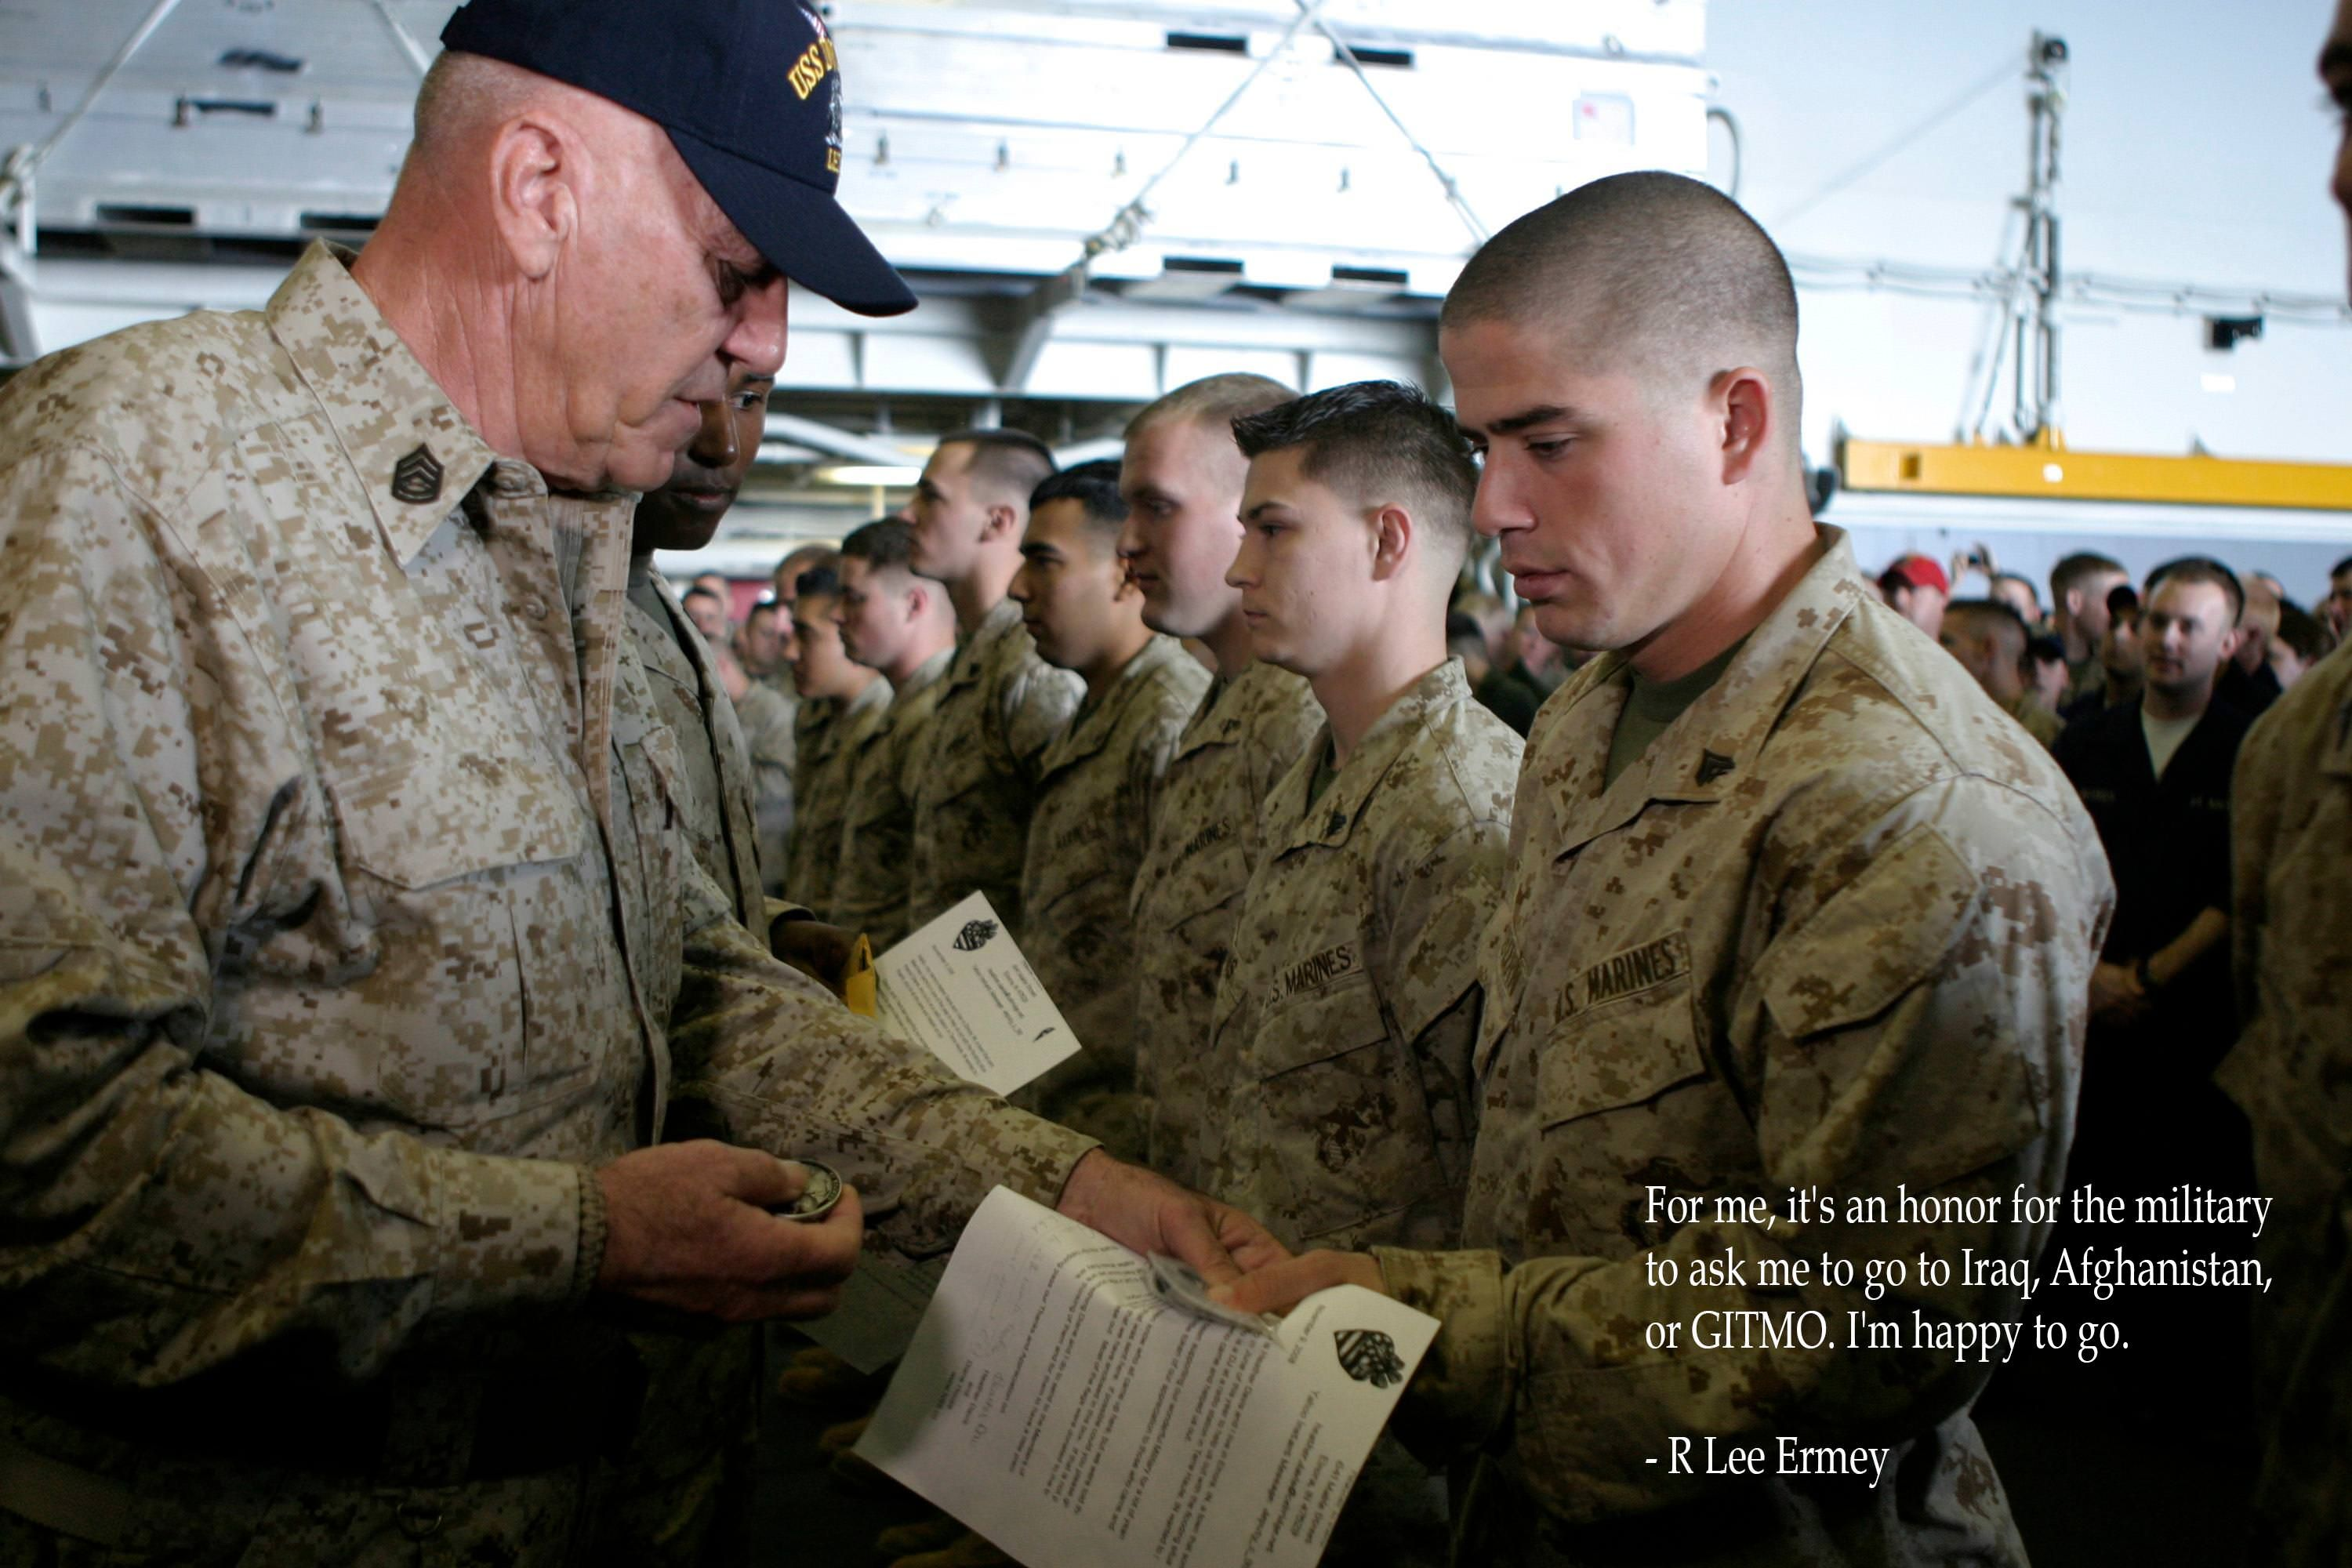 """""""For me it's an honor for the military to ask me to go to Iraq Afghanistan or GOTMO. I'm happy to go."""" - R. Lee Ermey [3000x2000] via QuotesPorn on April 16 2018 at 10:07AM"""